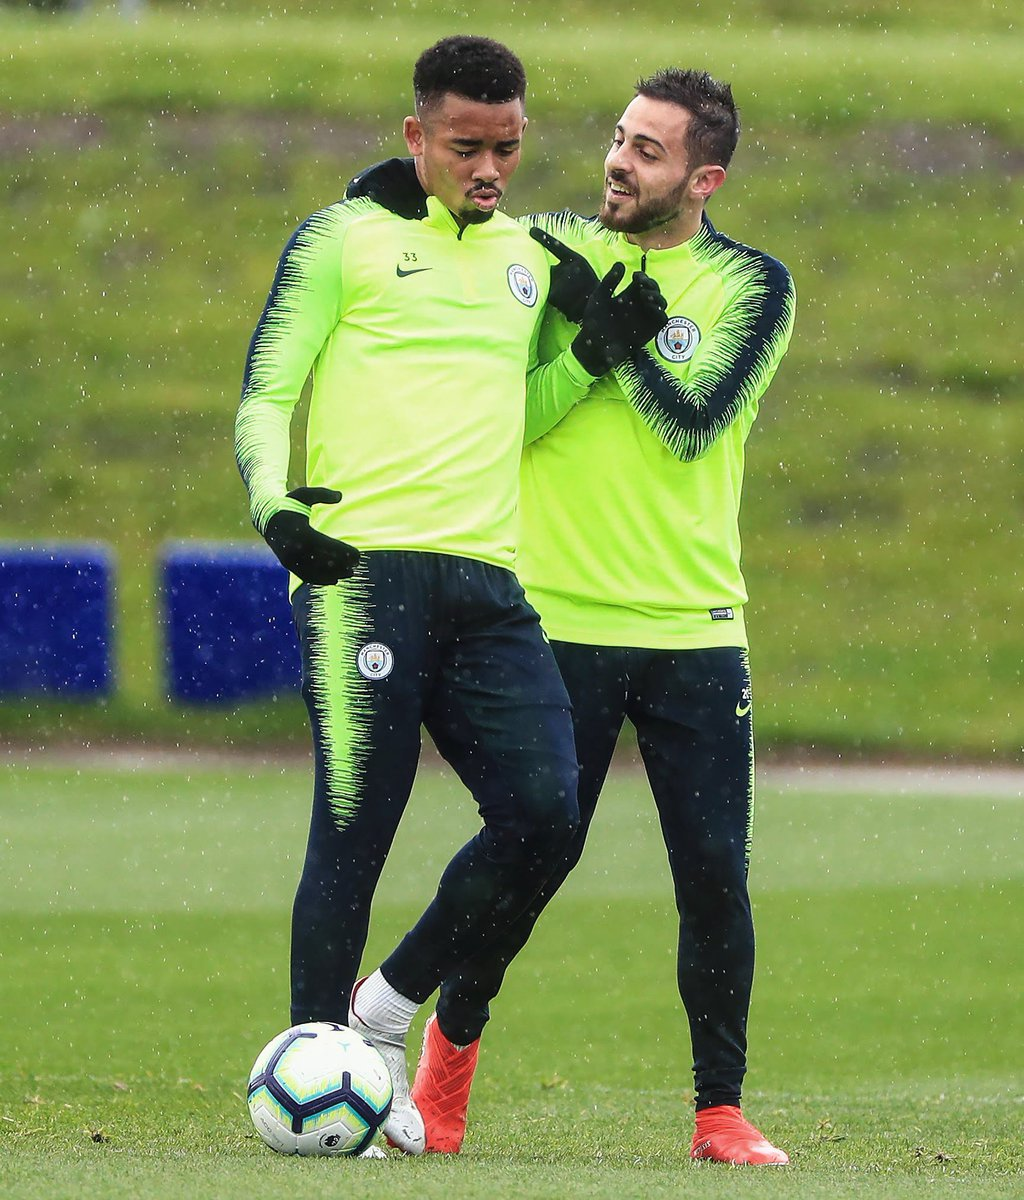 Getting ready for Sunday!  Come on @ManCity 🔵🔵 @gabrieljesus33